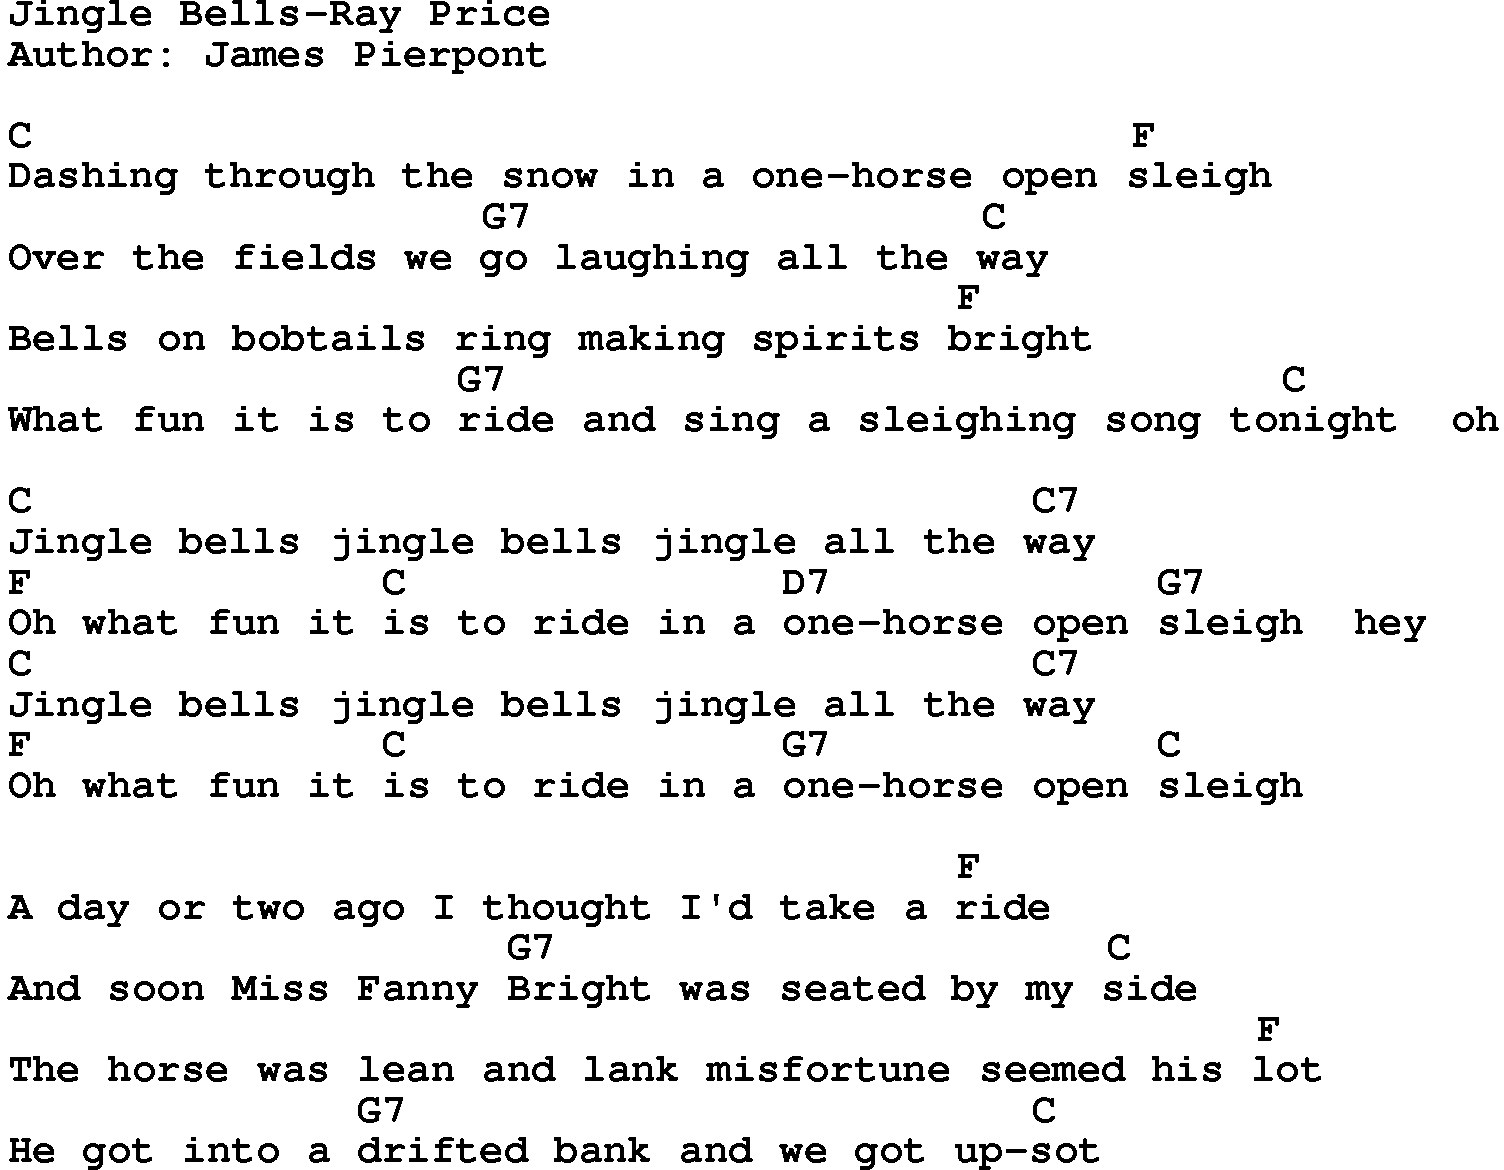 photograph about Jingle Bells Lyrics Printable called Region Audio:Jingle Bells-Ray Value Lyrics and Chords